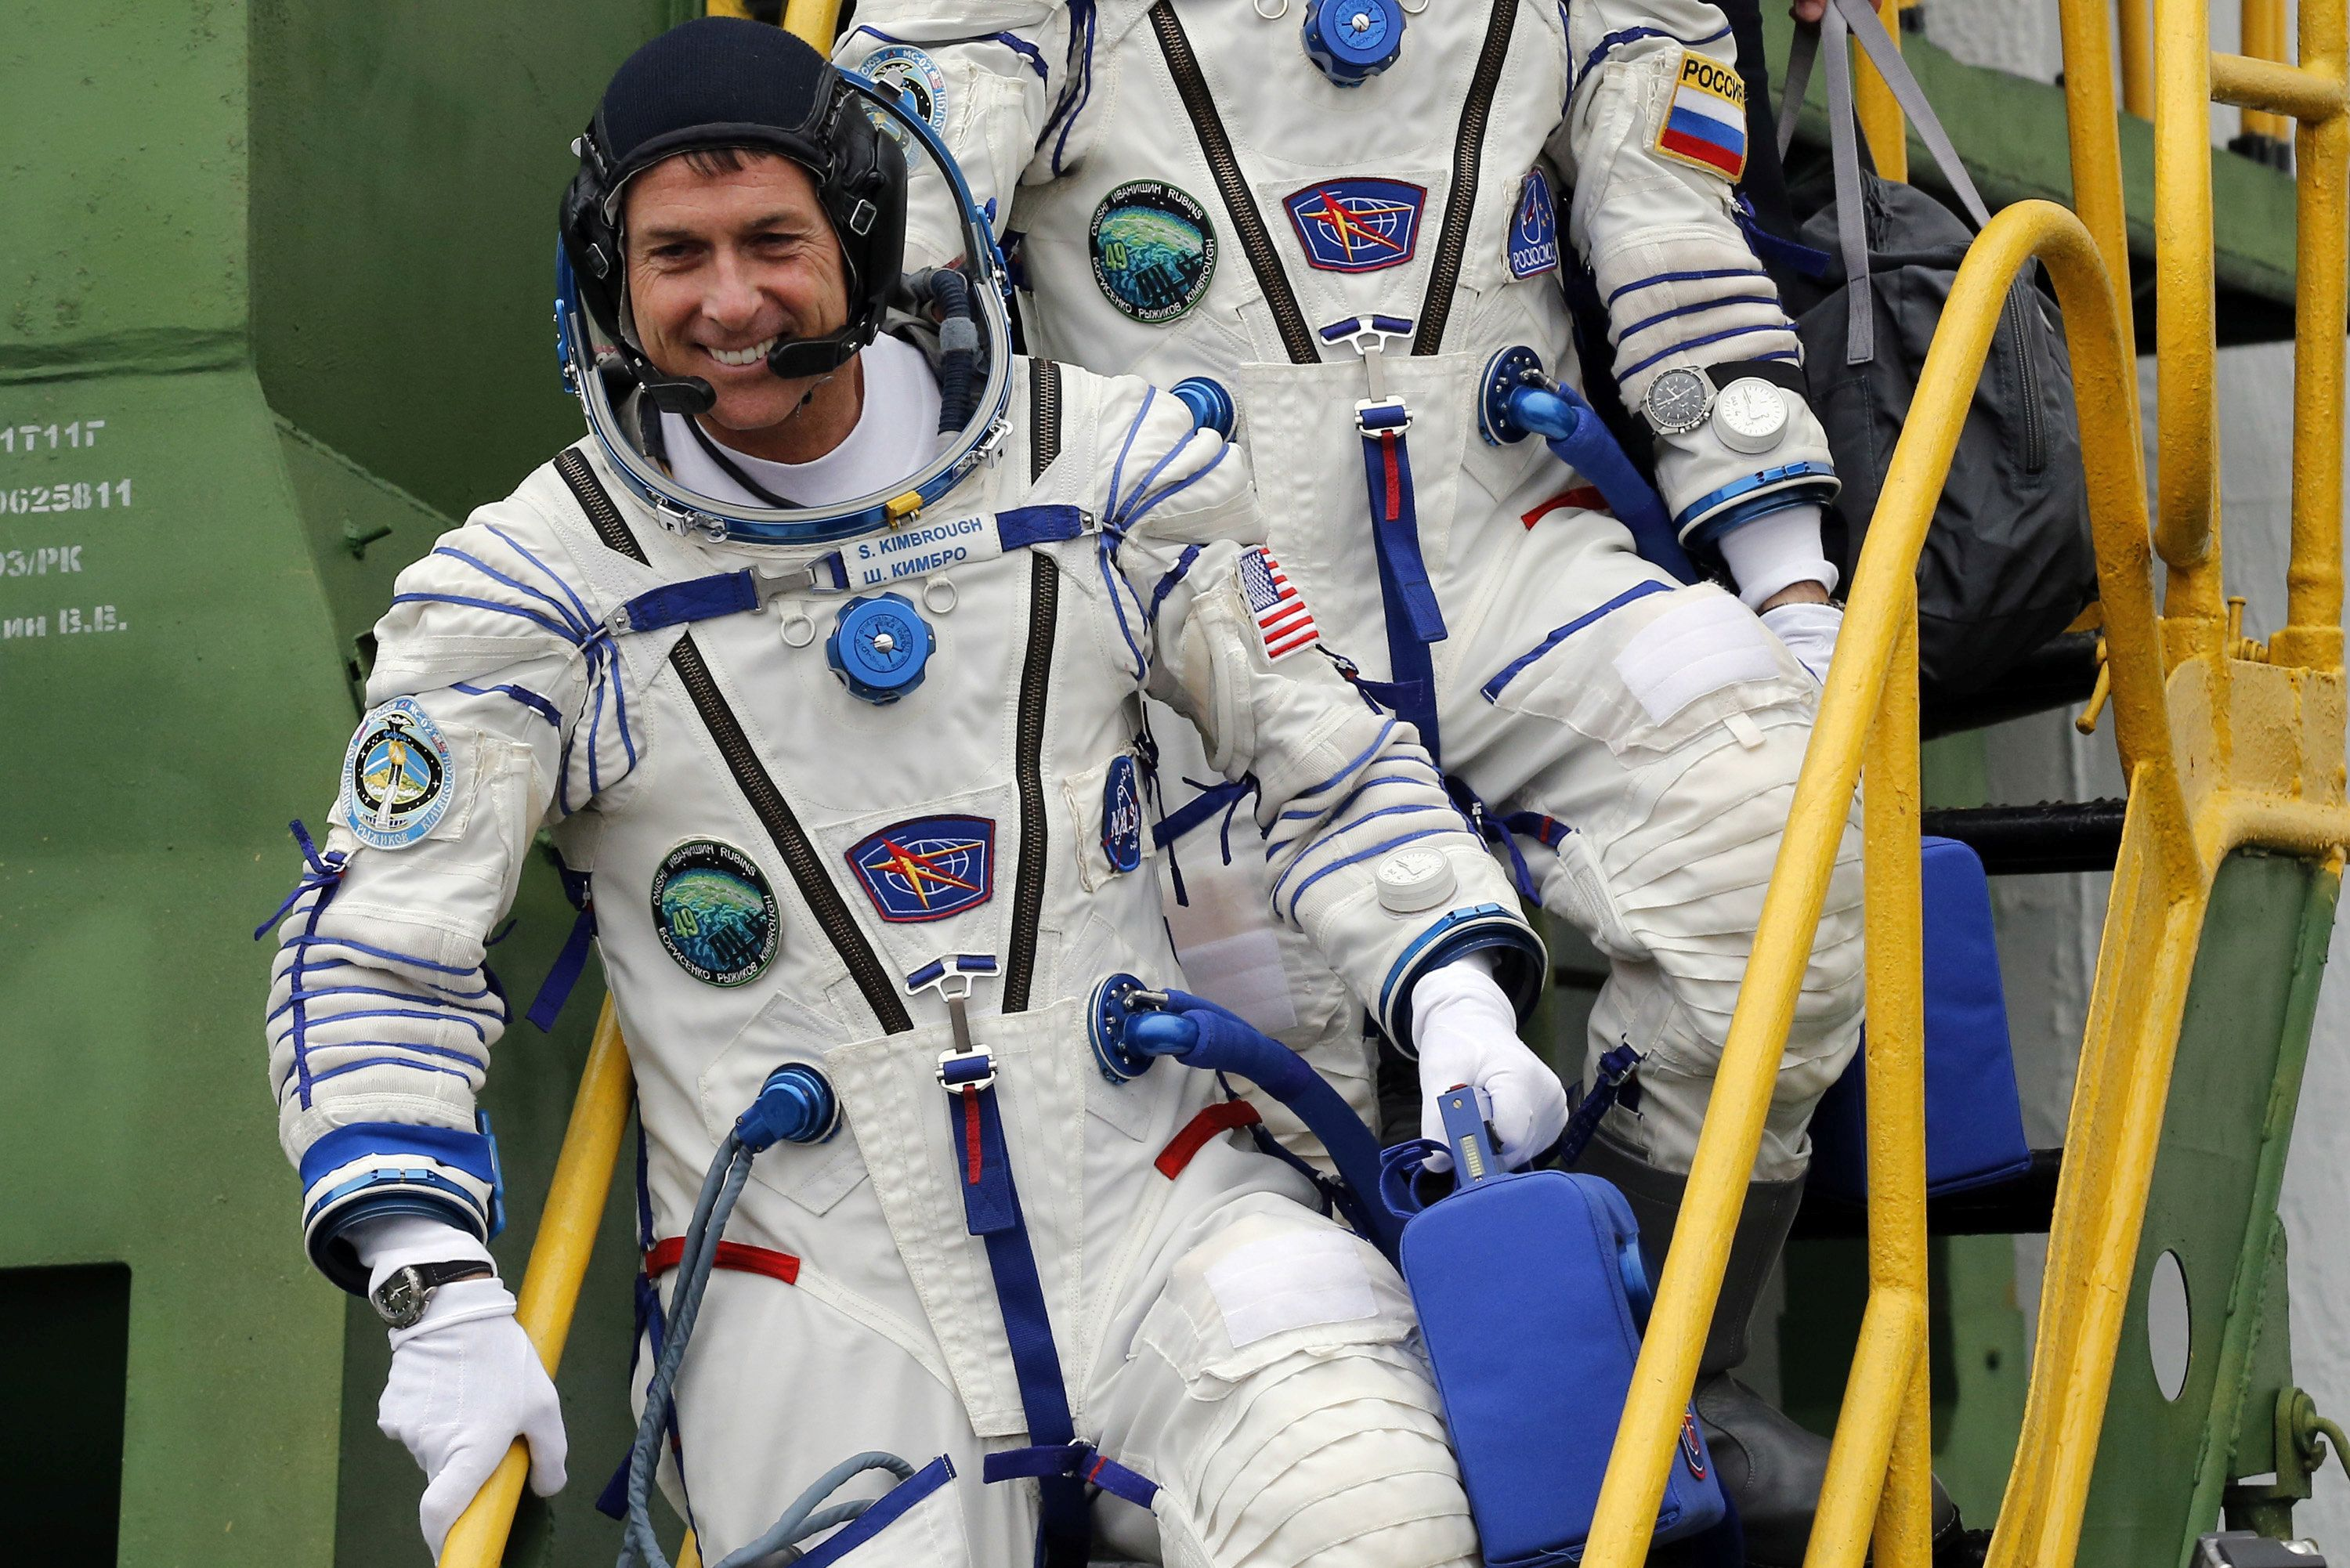 International Space Station crew member Shane Kimbrough, pictured, voted mid-orbit last